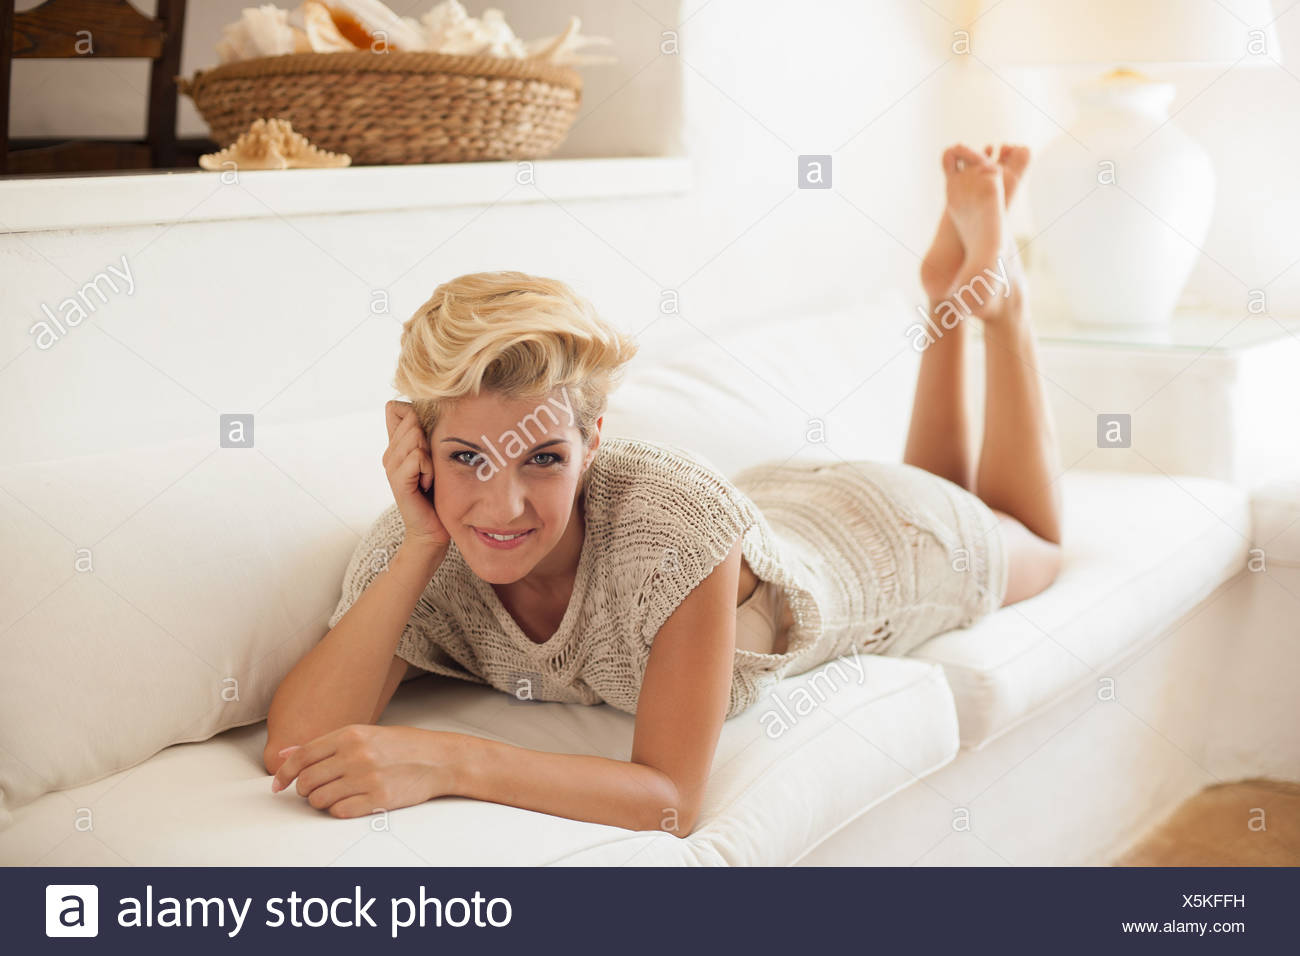 Smiling woman relaxing on sofa - Stock Image